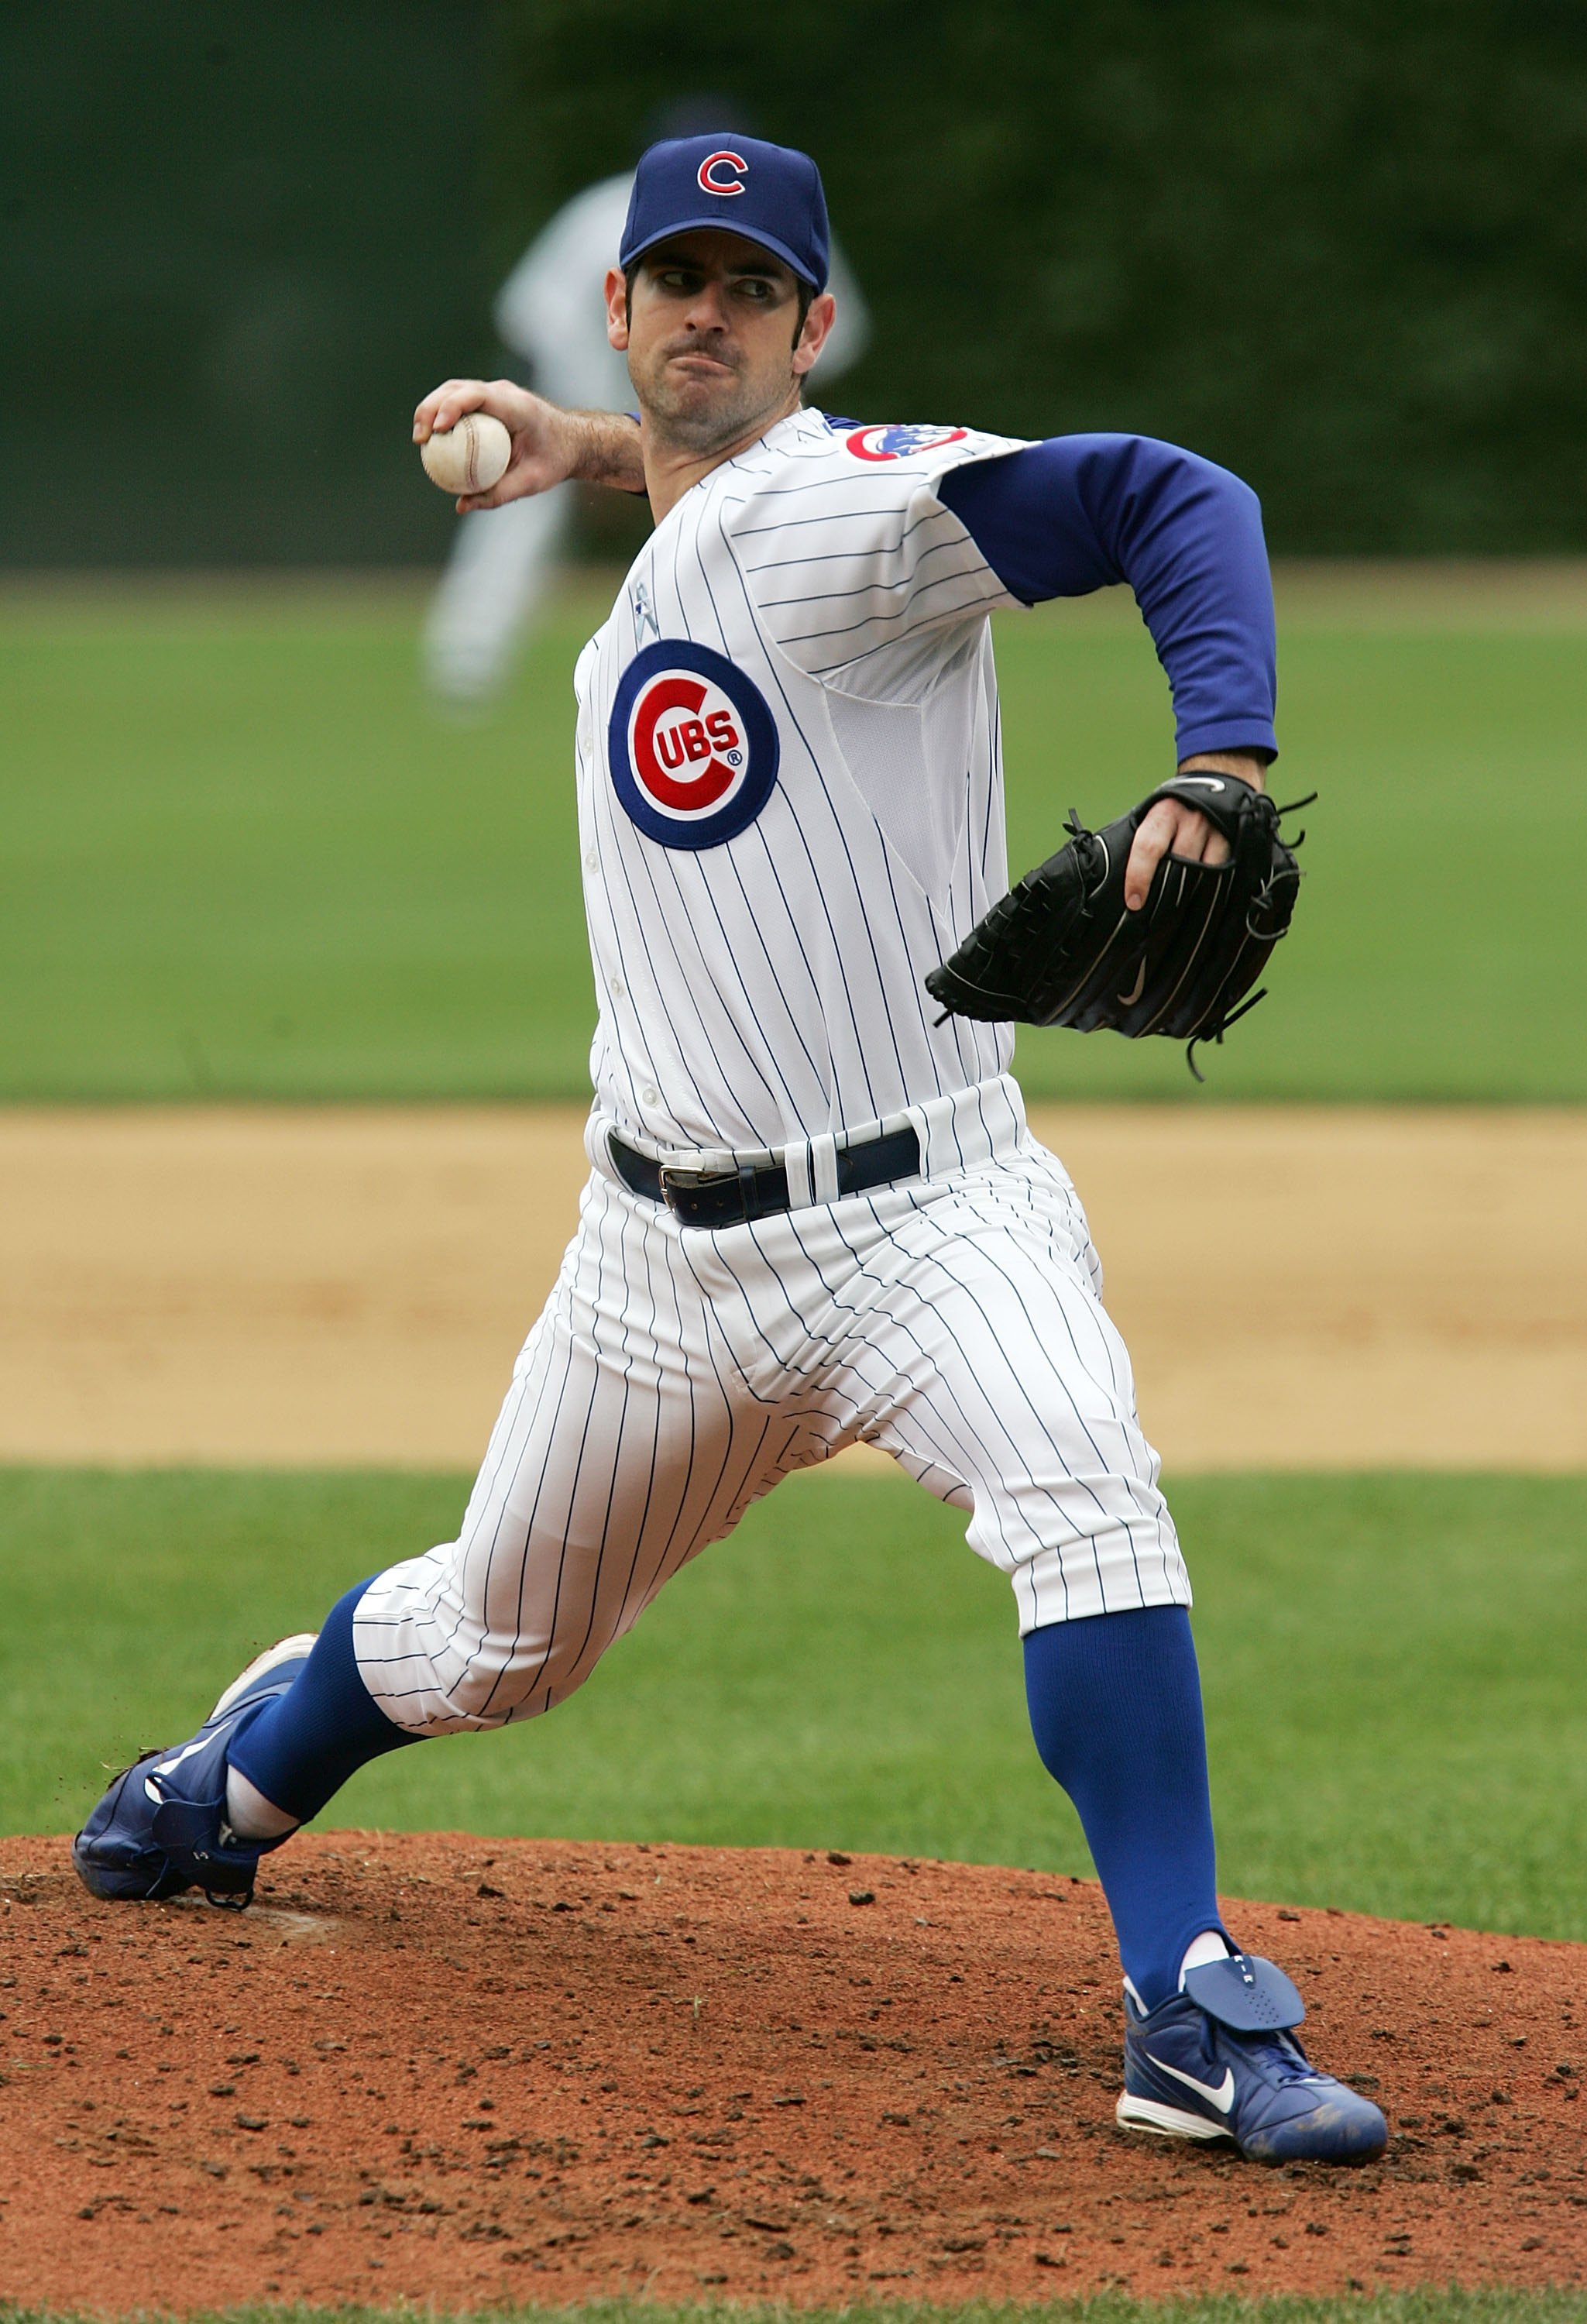 CHICAGO - JUNE 18:  Mark Prior #22 of the Chicago Cubs delivers the ball against the Detroit Tigers on June 18, 2006 at Wrigley Field in Chicago, Illinois. The Tigers defeated the Cubs 12-3.  (Photo by Jonathan Daniel/Getty Images)